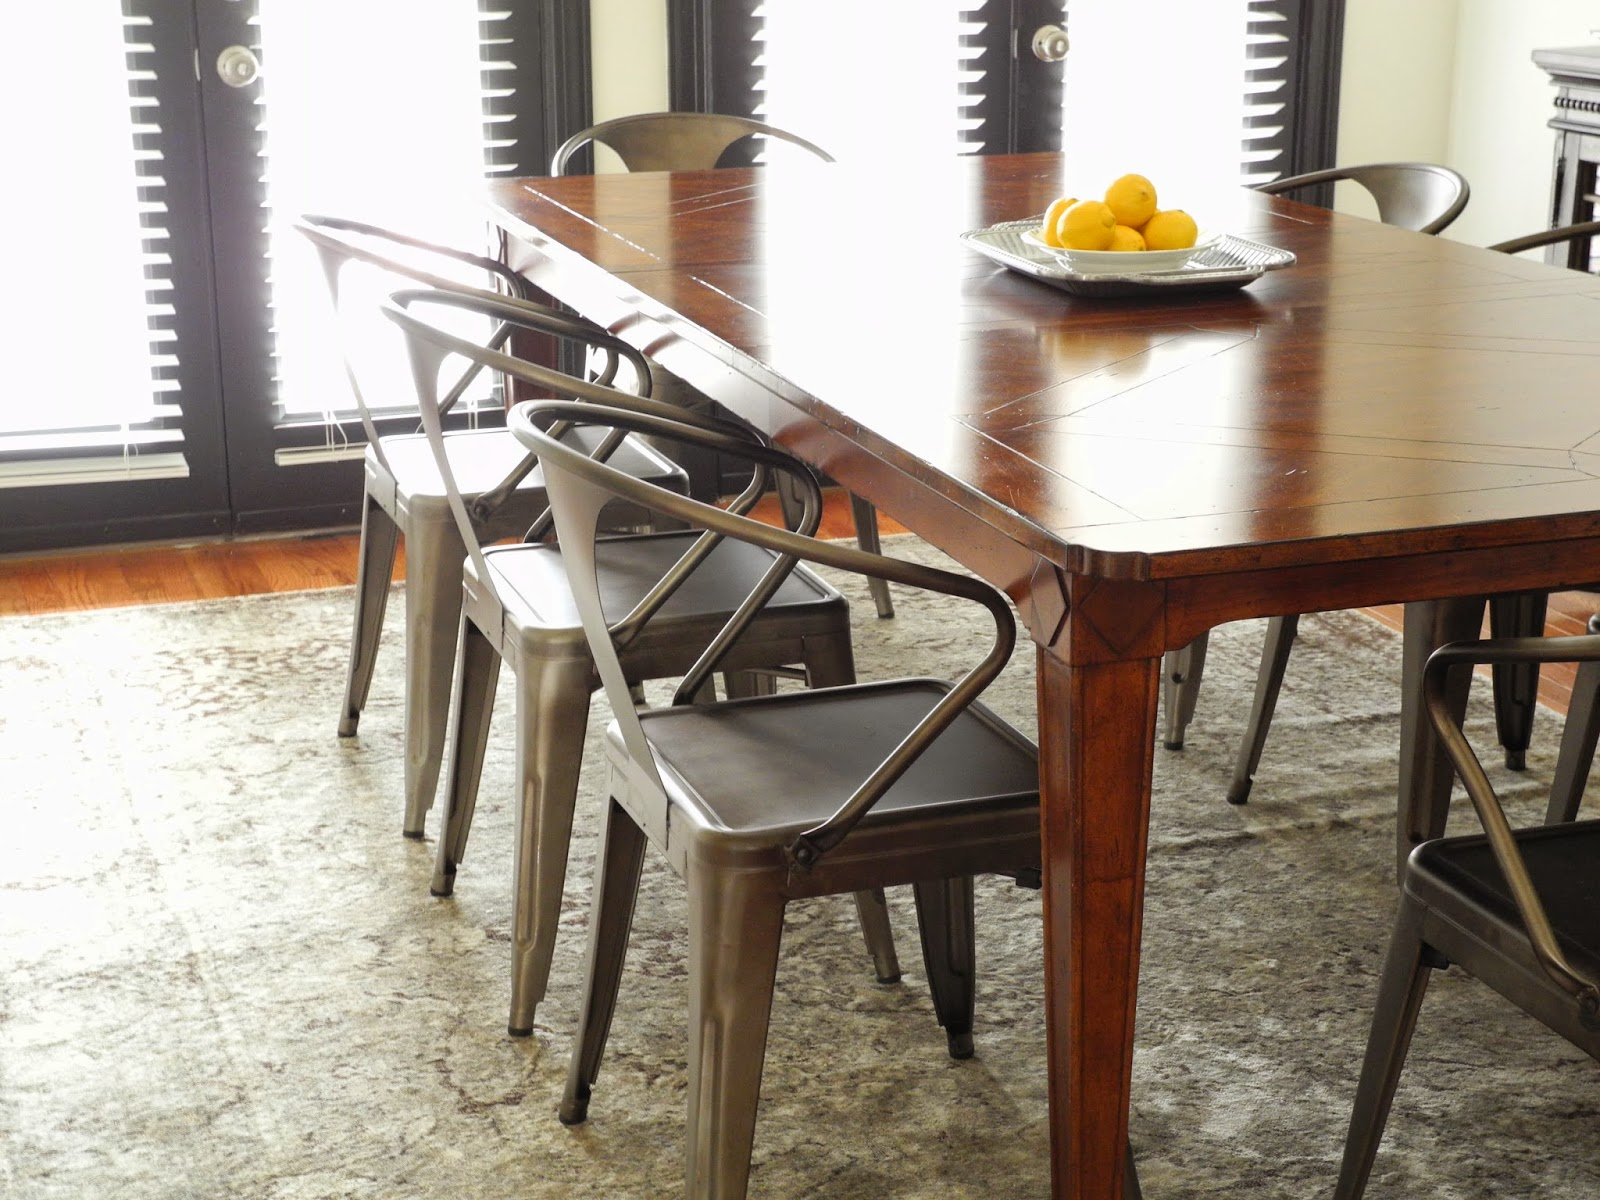 Sitting Pretty: New Tabouret Dining Chairs